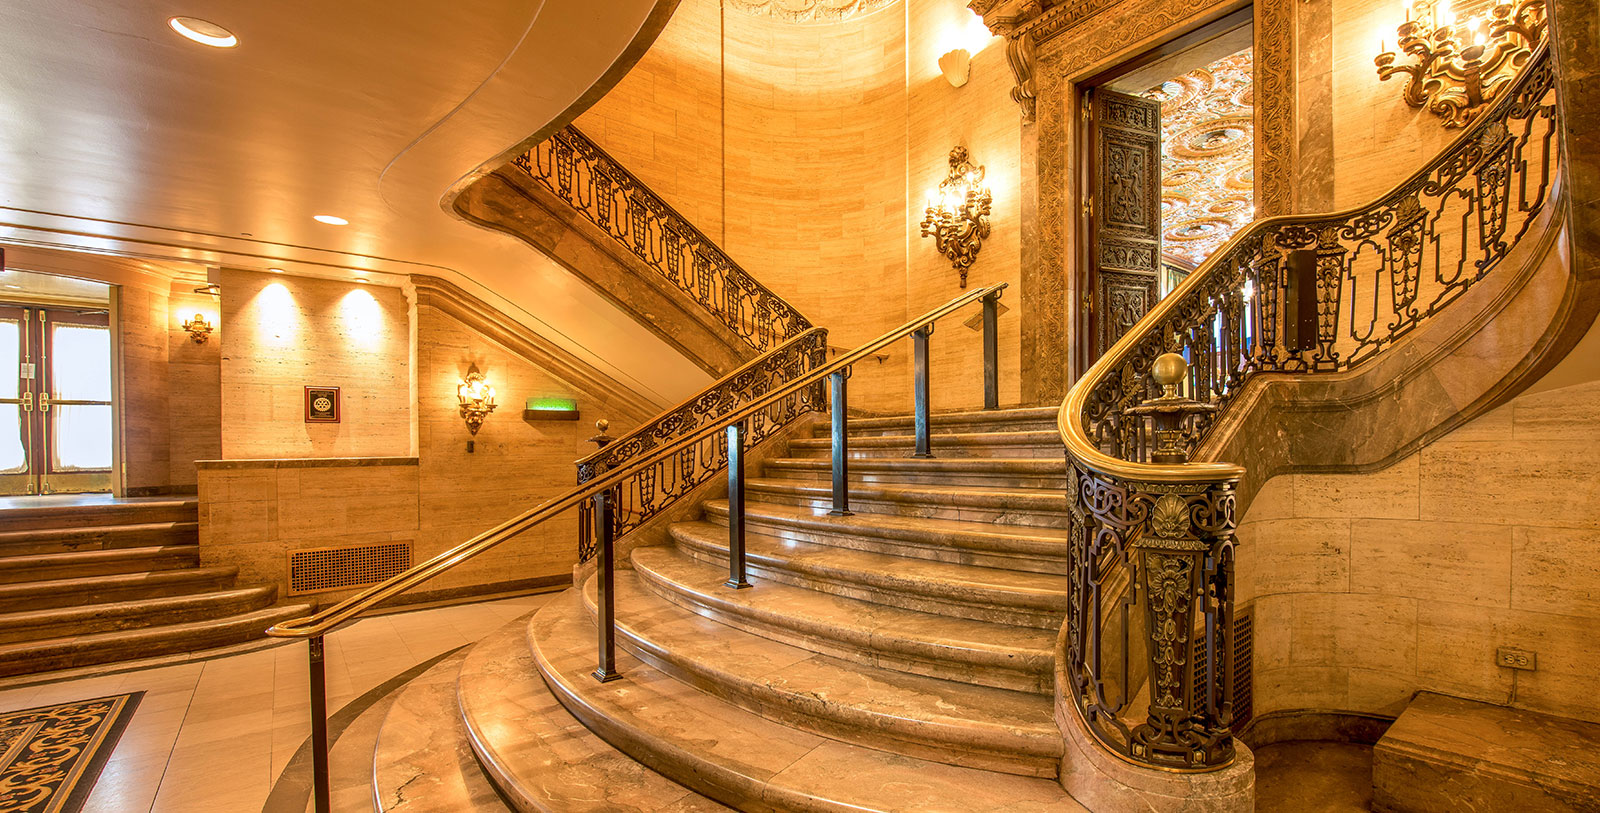 Image of staircase HOTEL DU PONT, 1913, Member of Historic Hotels of America, in Wilmington, Delaware, Experience